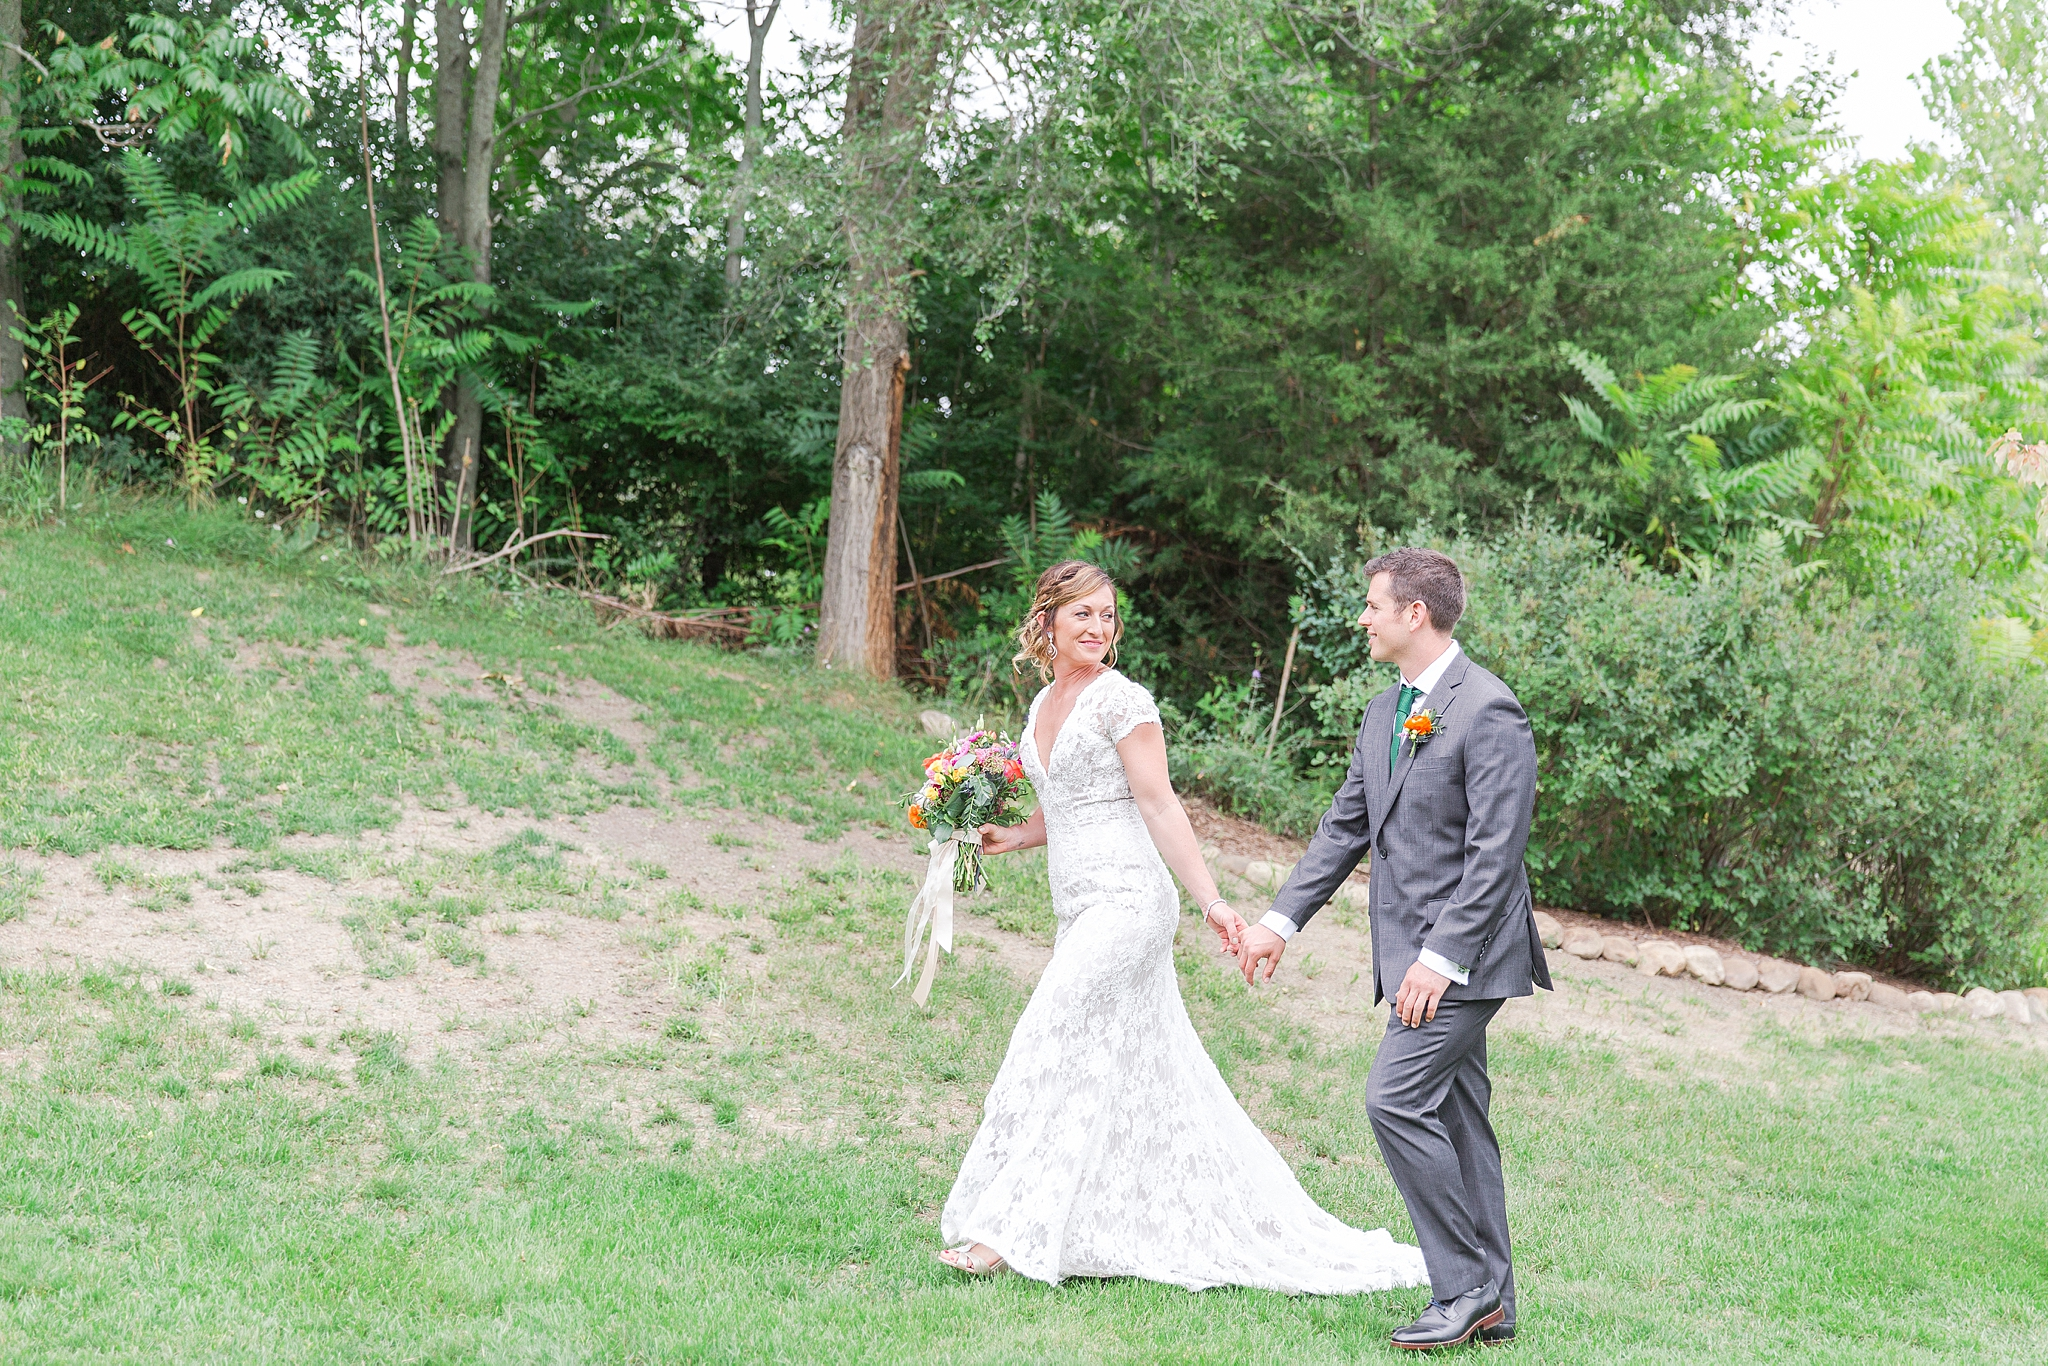 private-lakefront-estate-wedding-photography-in-ann-arbor-michigan-by-courtney-carolyn-photography_0022.jpg